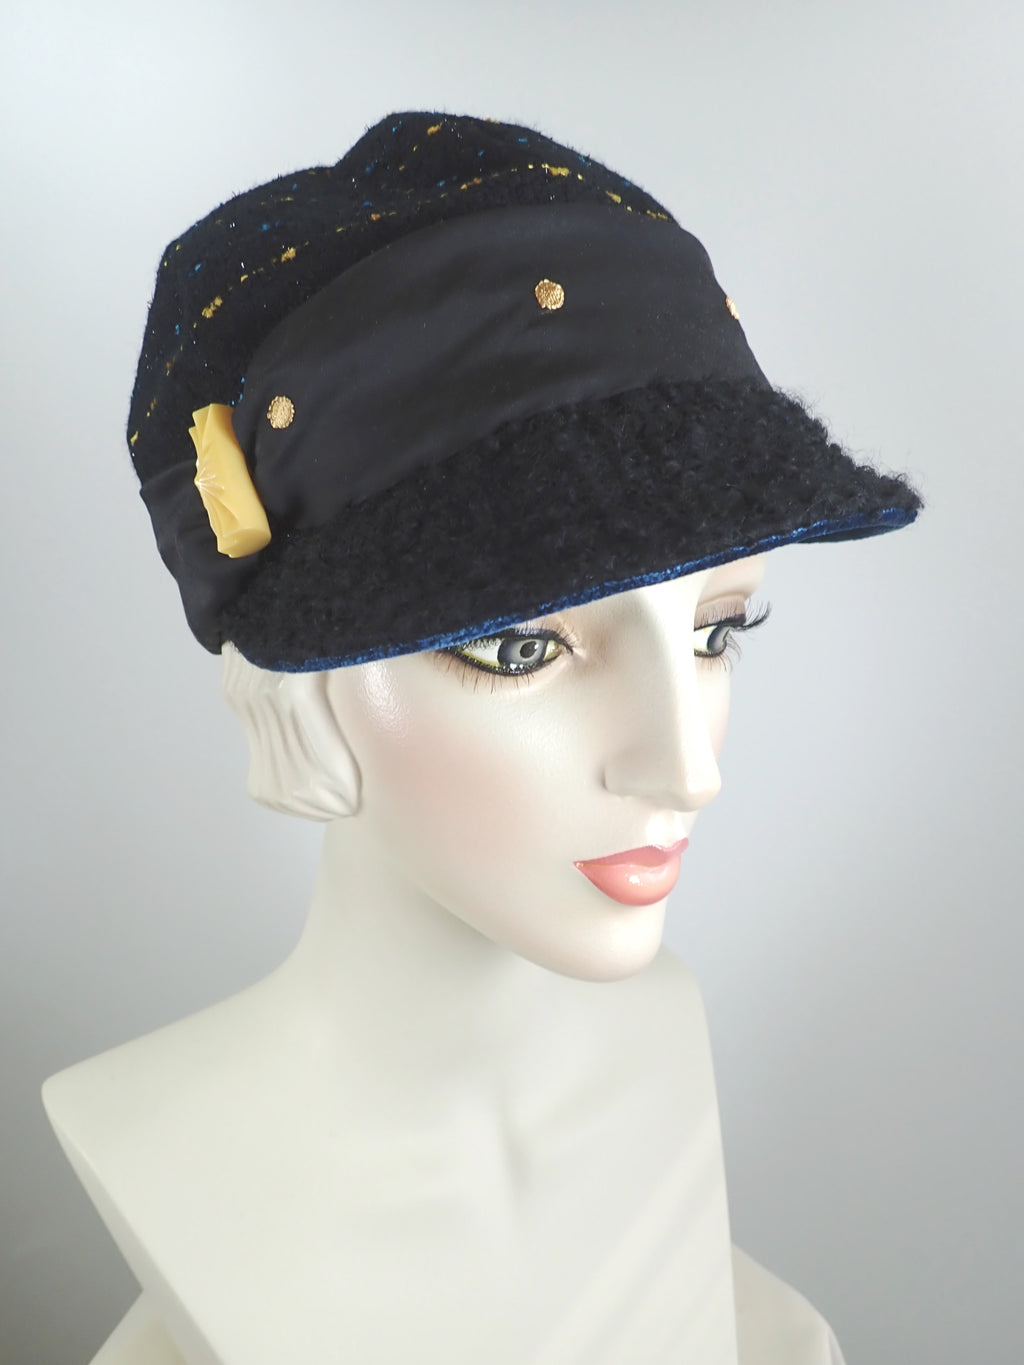 Women's fall and winter black, gold and blue wool boucle baseball style newsboy cap